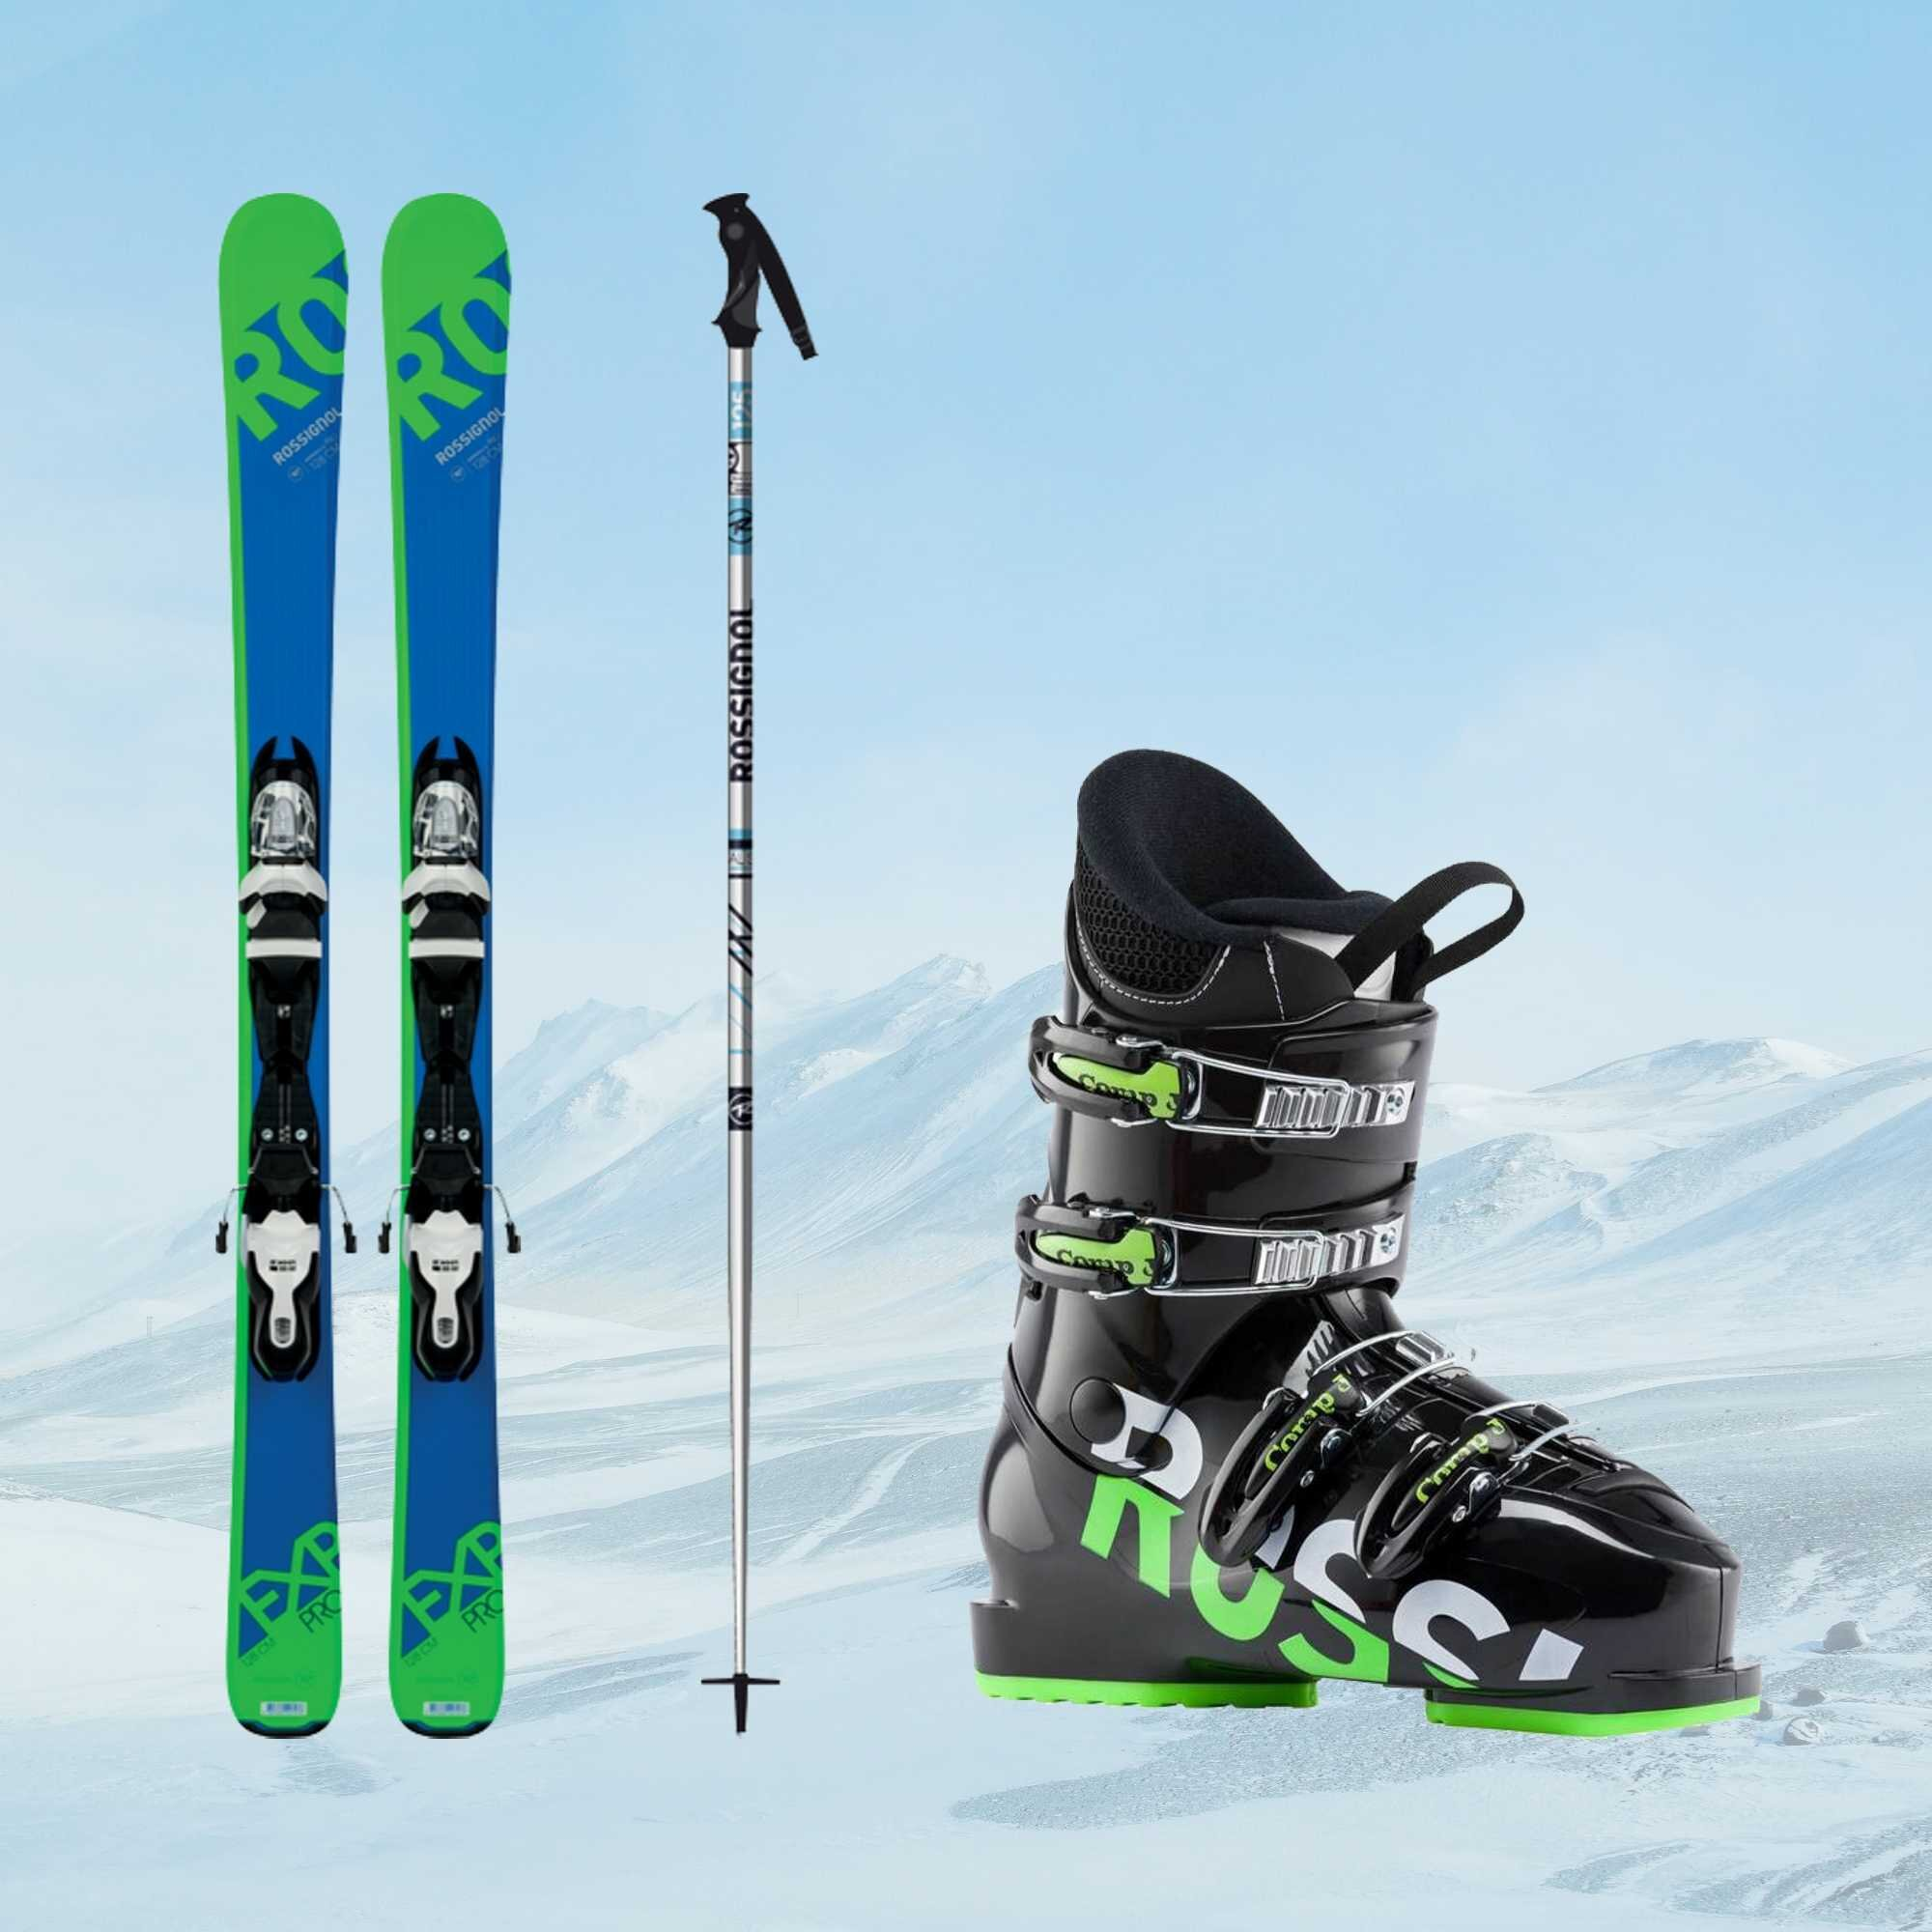 Copy of Copy of High Performance SKi Rental Package (7).jpg